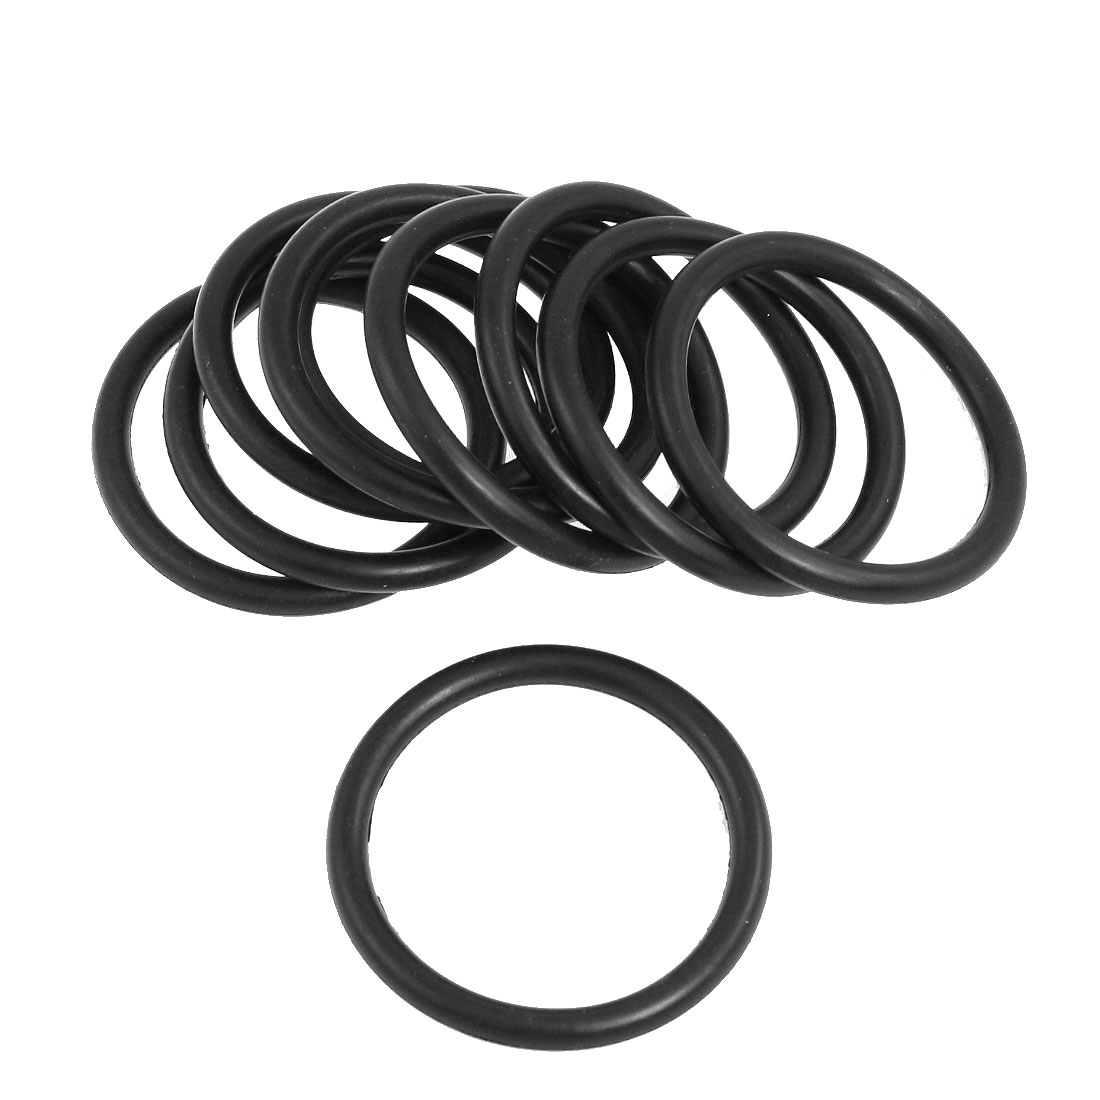 10 Pcs Flexible Nitrile Rubber O Rings NBR Seal Grommets 60mm x 5.7mm